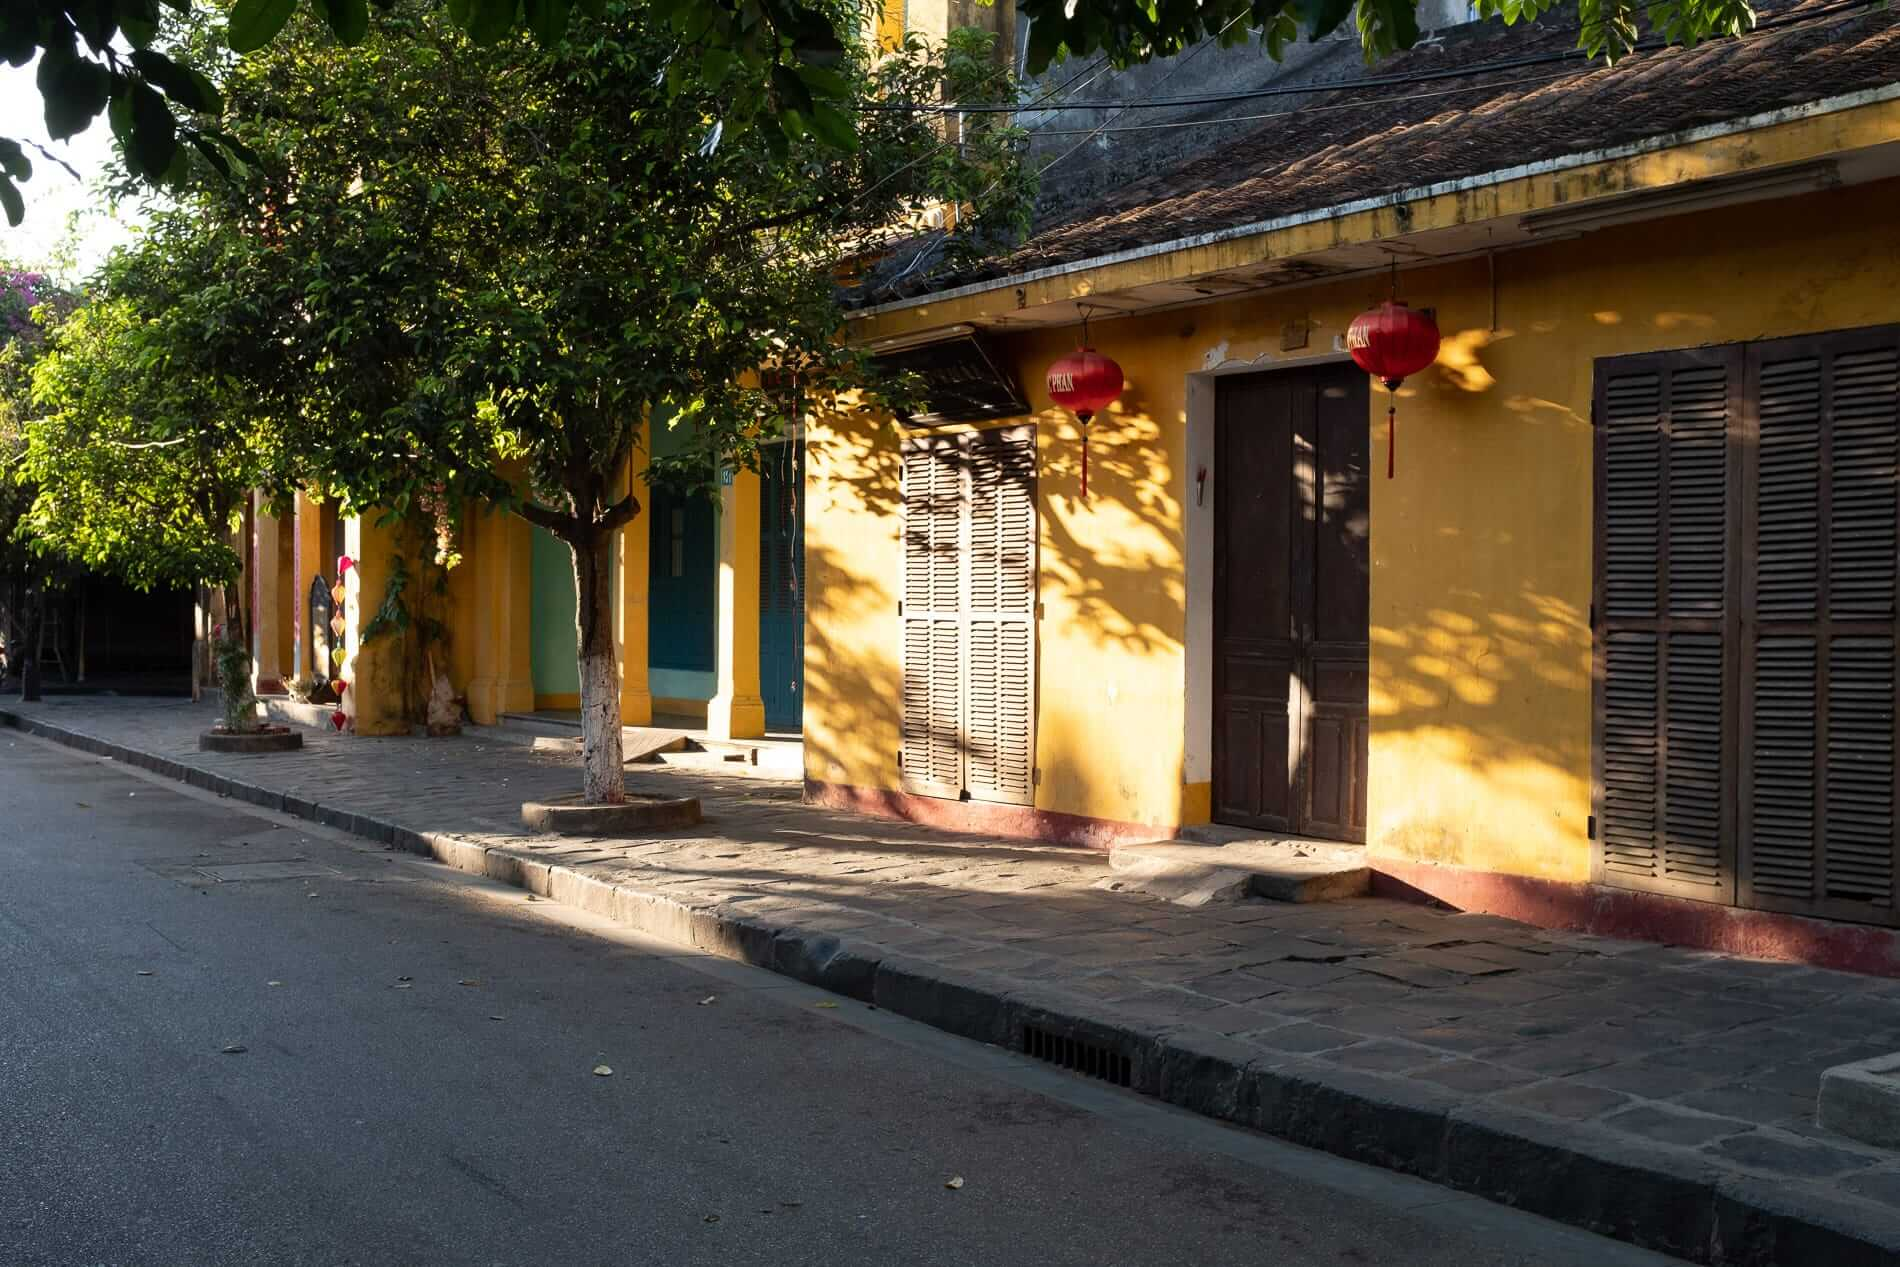 Beautiful morning light - Hoi An Ancient Town